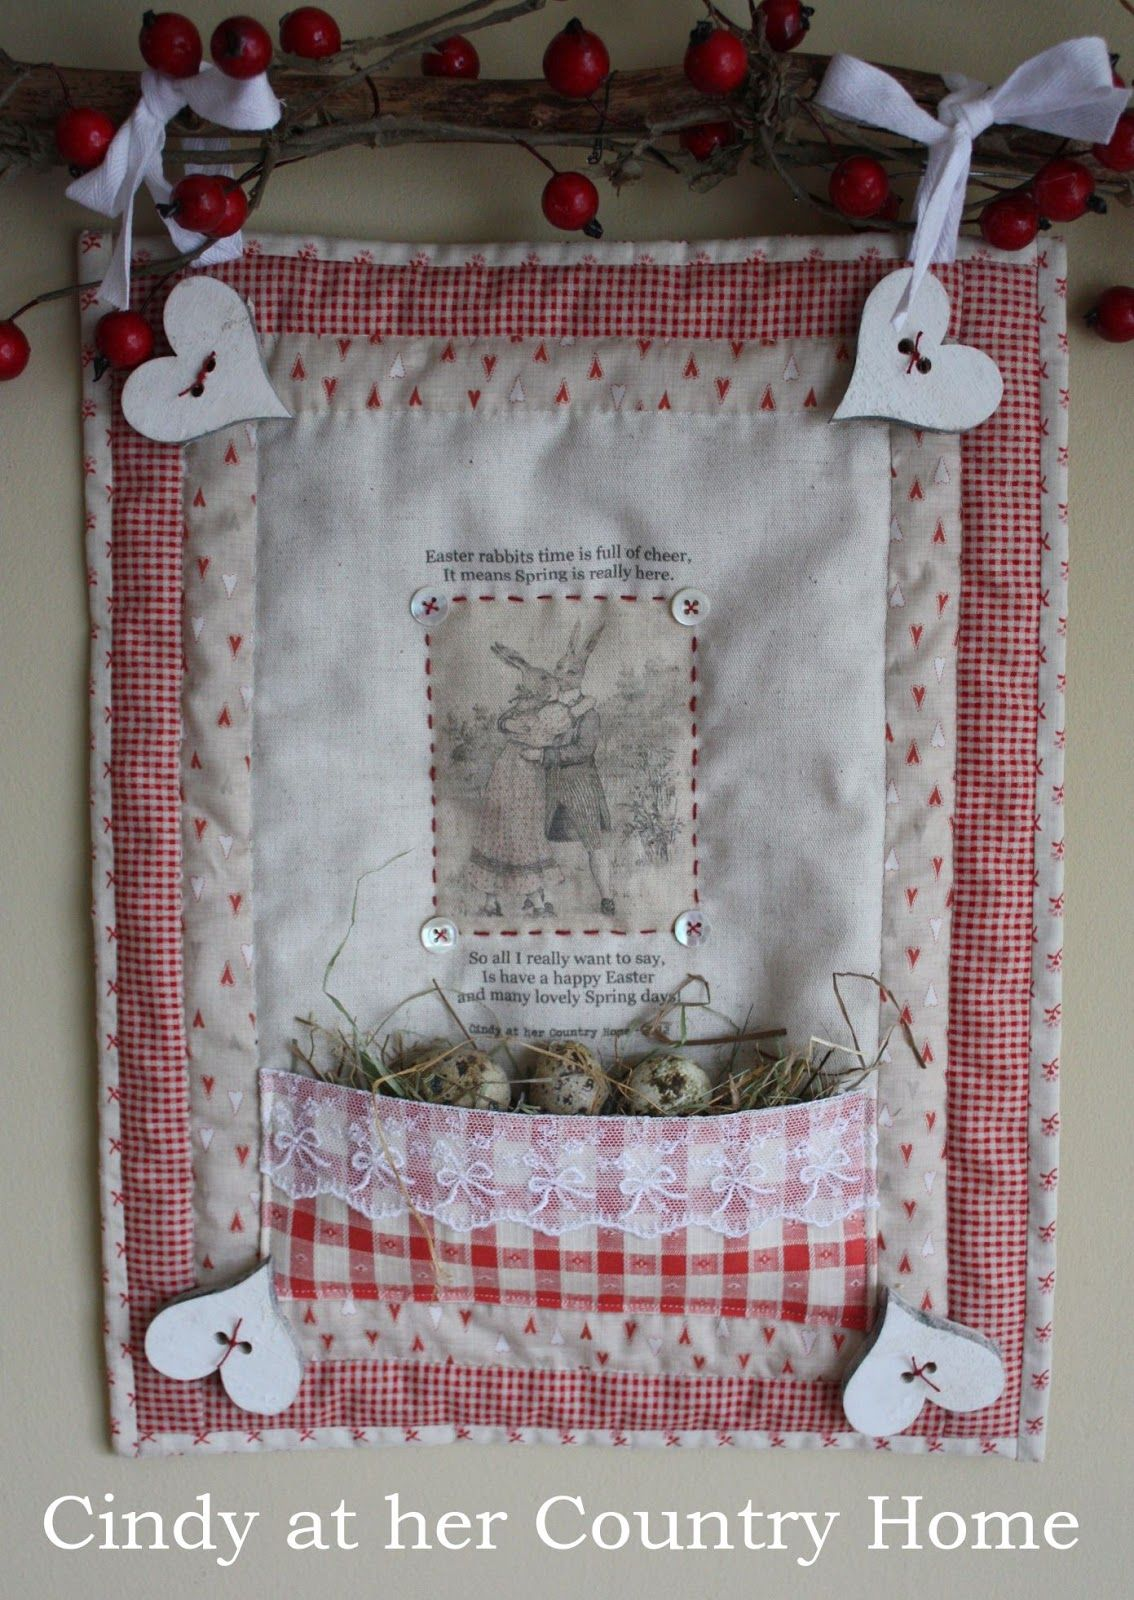 Cindy at her Country Home   Quilts & Patchwork   Pinterest ... : country home quilts - Adamdwight.com